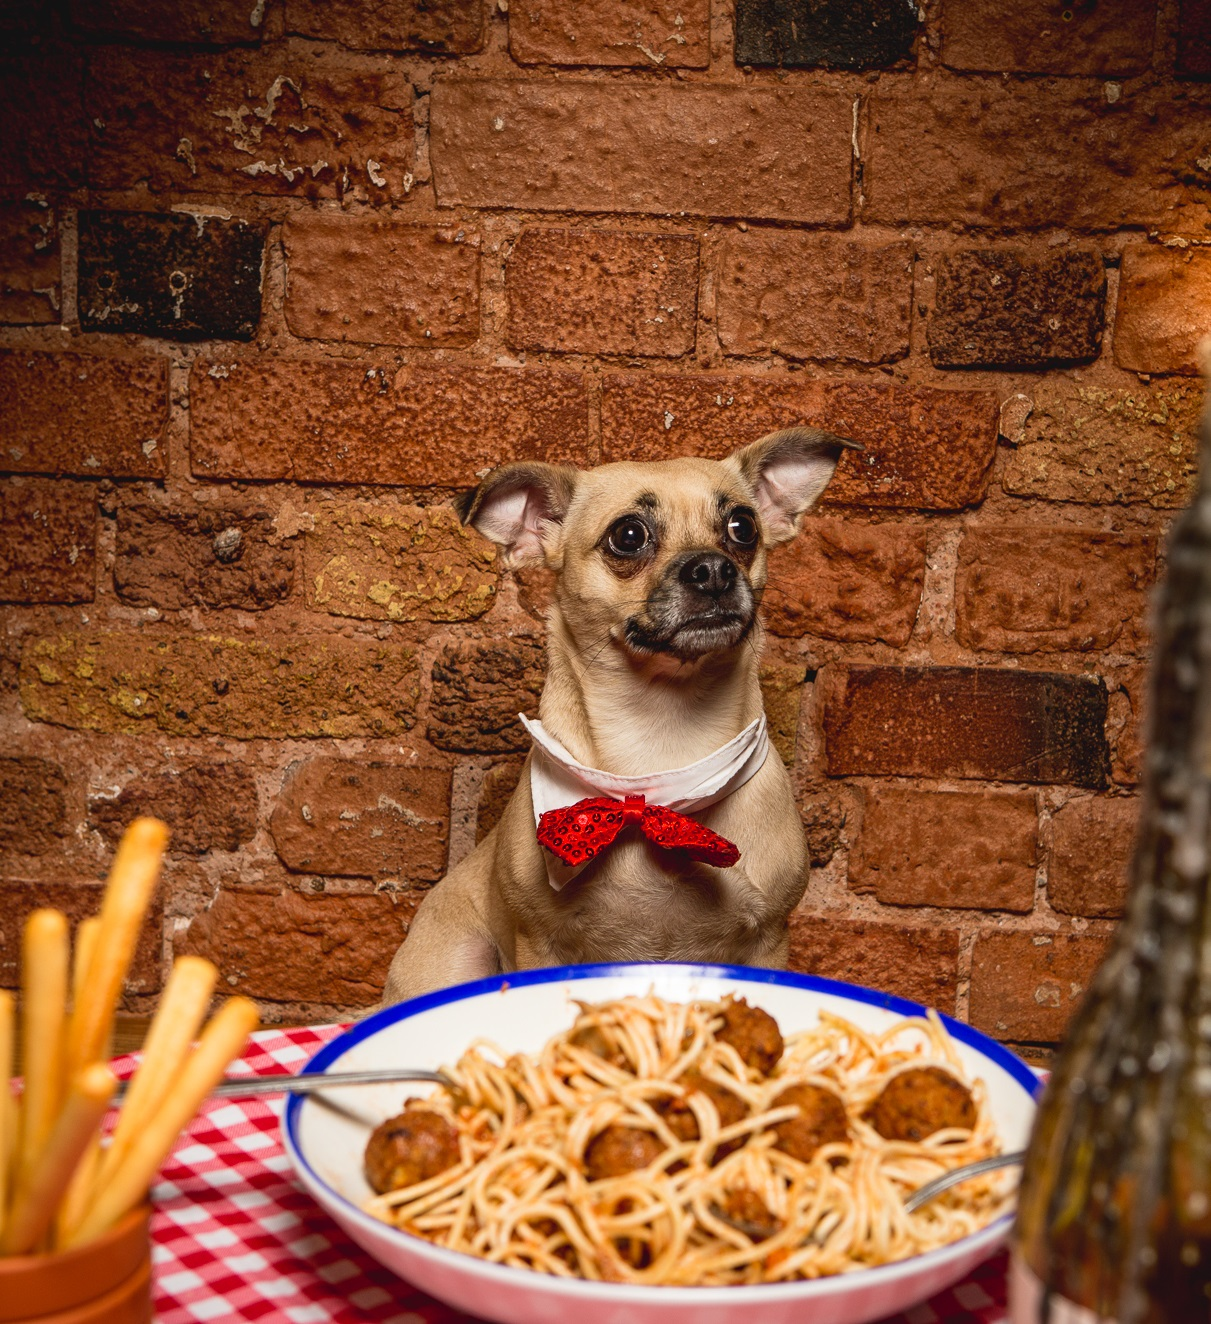 Lady and the Tramp Valentine's Screening - Dog Friendly!